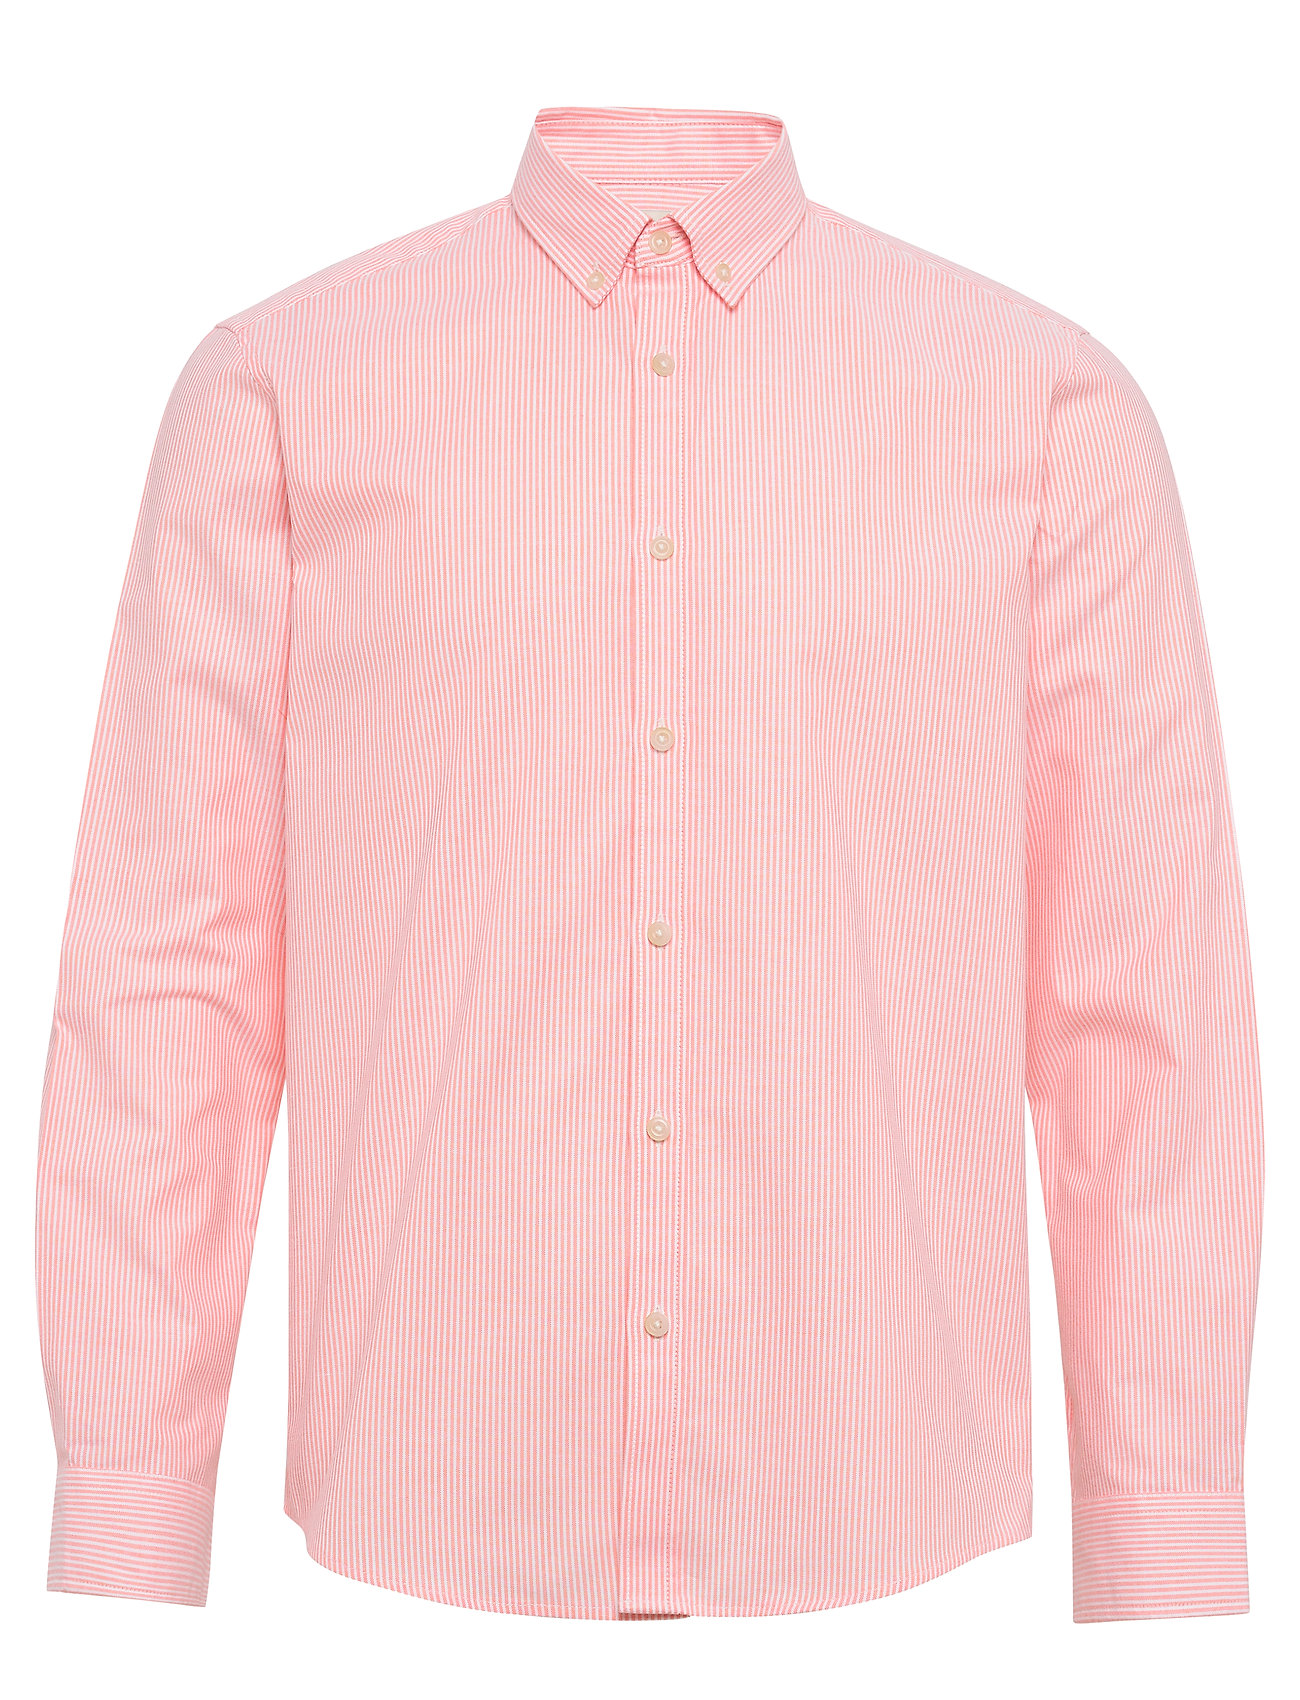 Image of Shirts Woven Skjorte Casual Lyserød Esprit Casual (3321012105)